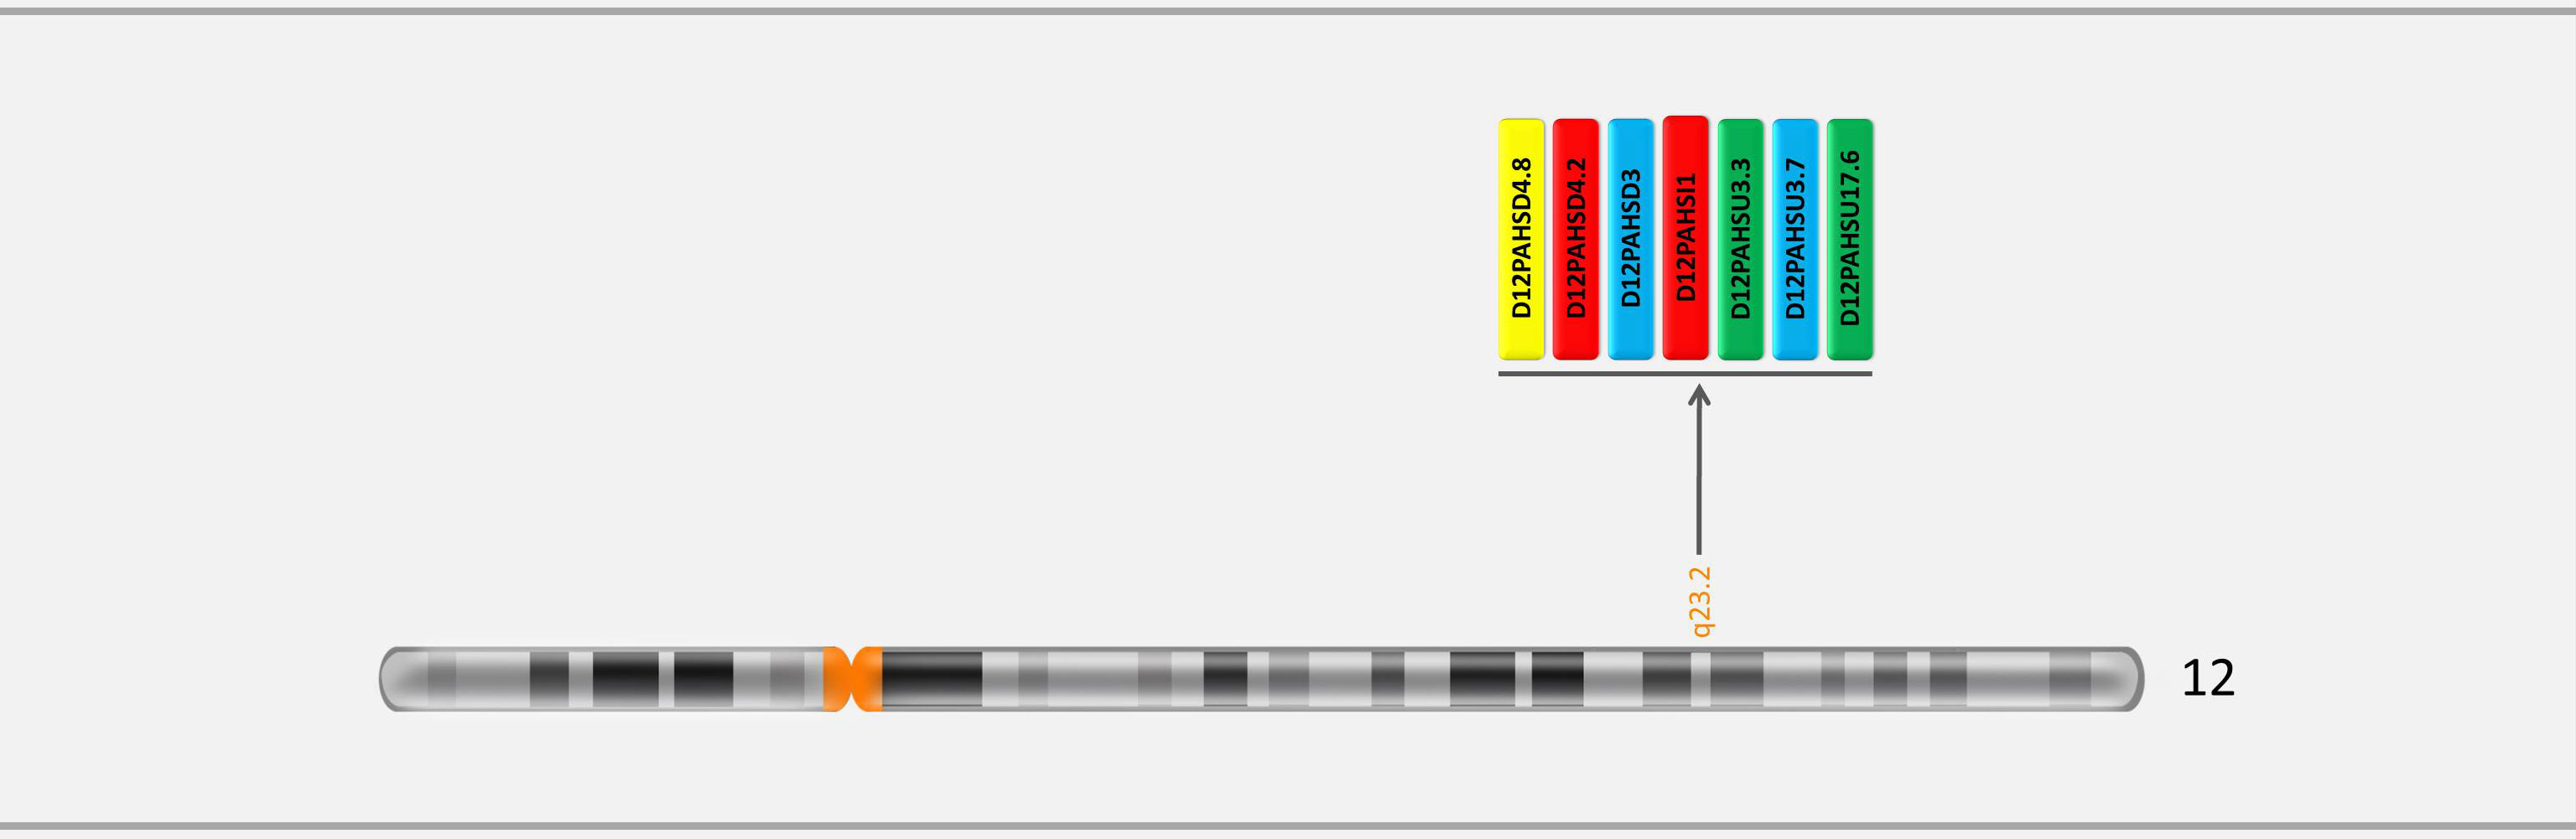 Locations of markers on chromosome 12 in GTHapScreen PAH 5-dye QF-PCR kit for Phenylketonuria or PKU diagnosis